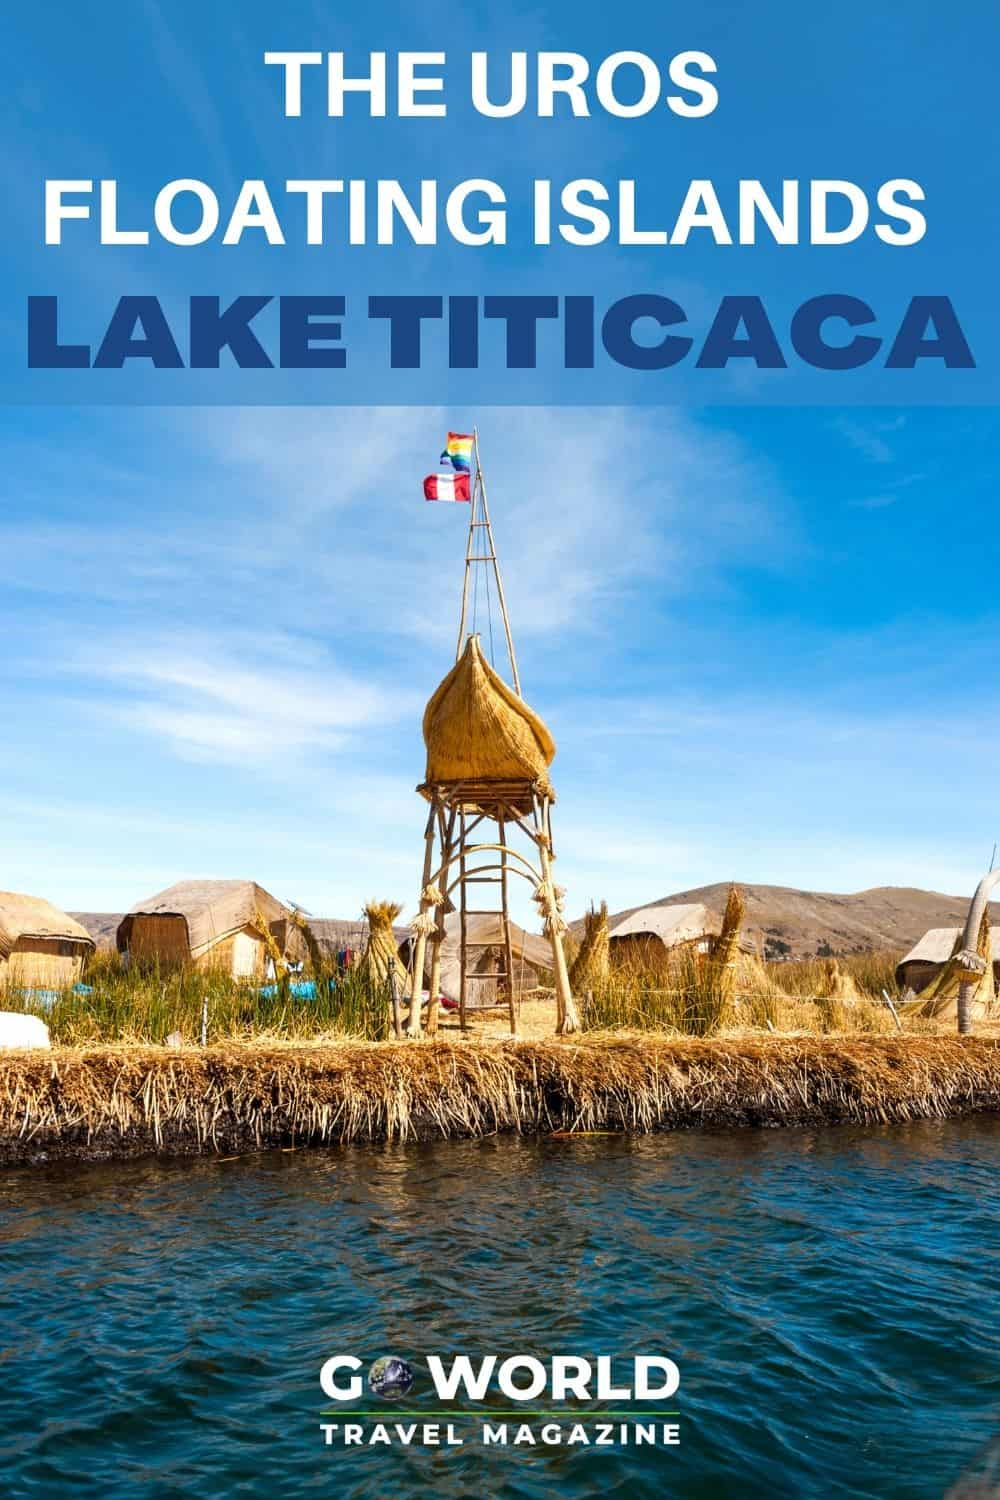 The Uros Floating Islands in Lake Titicaca are man made out of reeds. Boats out of Puno, Peru take visitors to see these unique islands. The Uros Floating Islands in Lake Titicaca are man made out of reeds. Boats out of Puno, Peru take visitors to see these unique islands. #Laketiticaca #Peru #urosfloatingislands